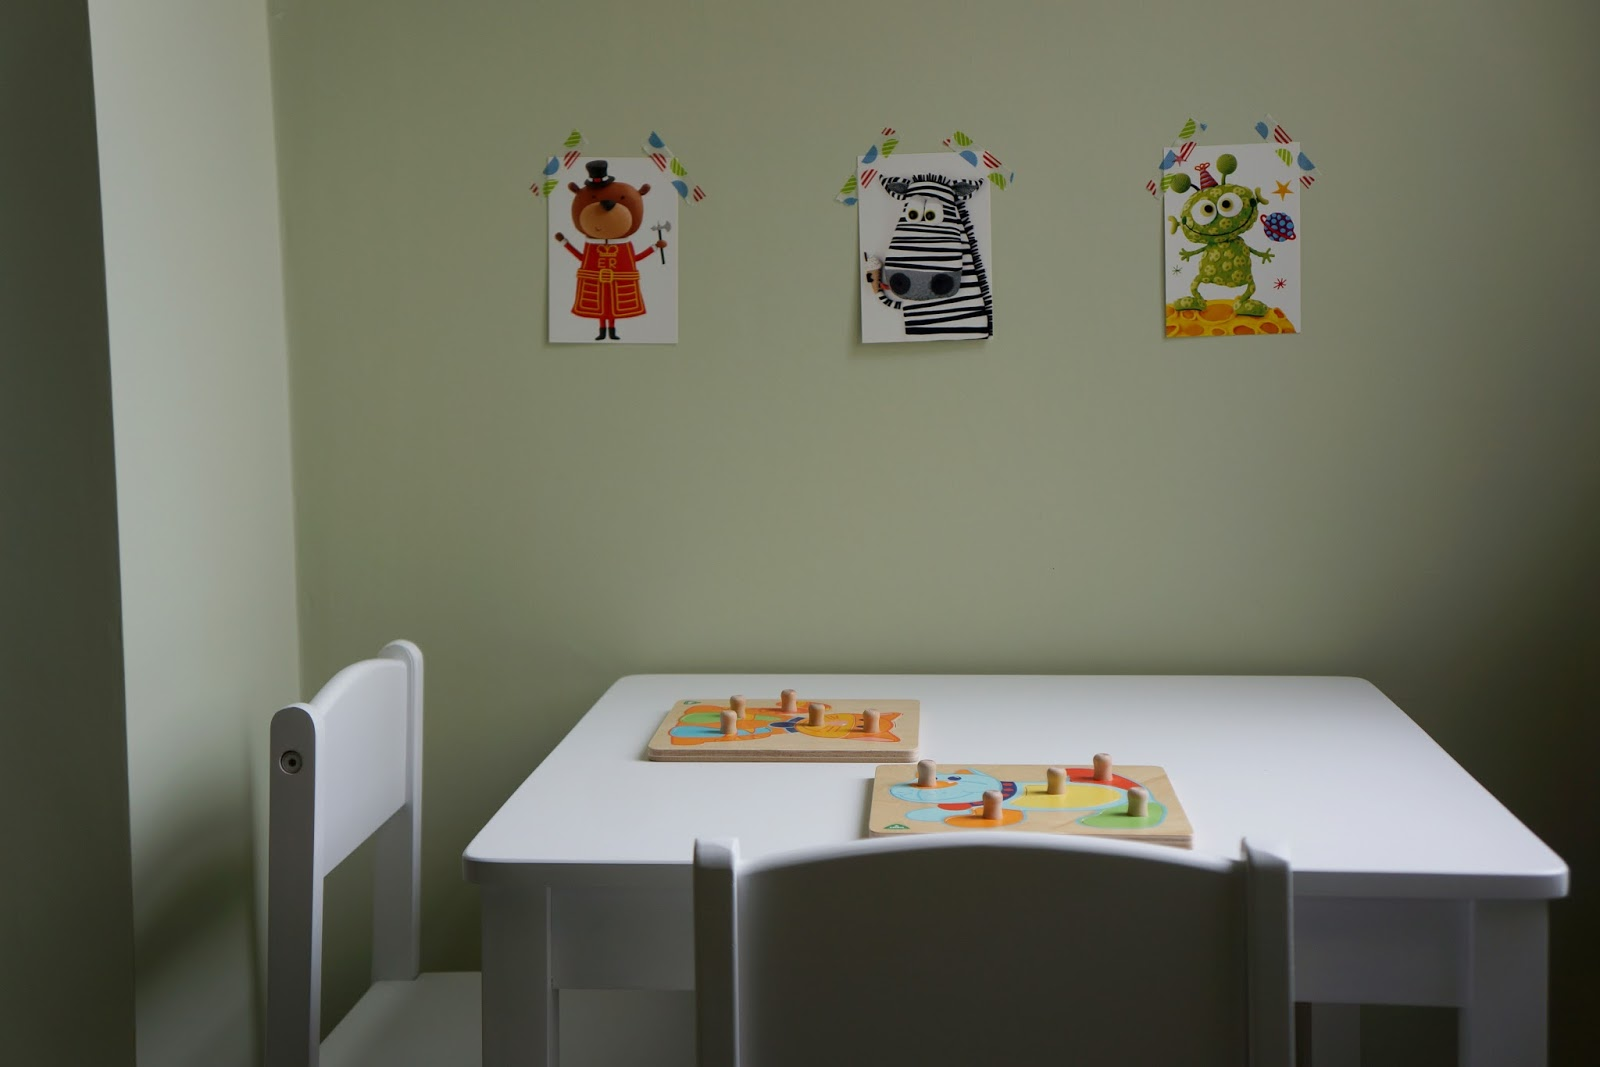 Kidkraft child size table and chairs